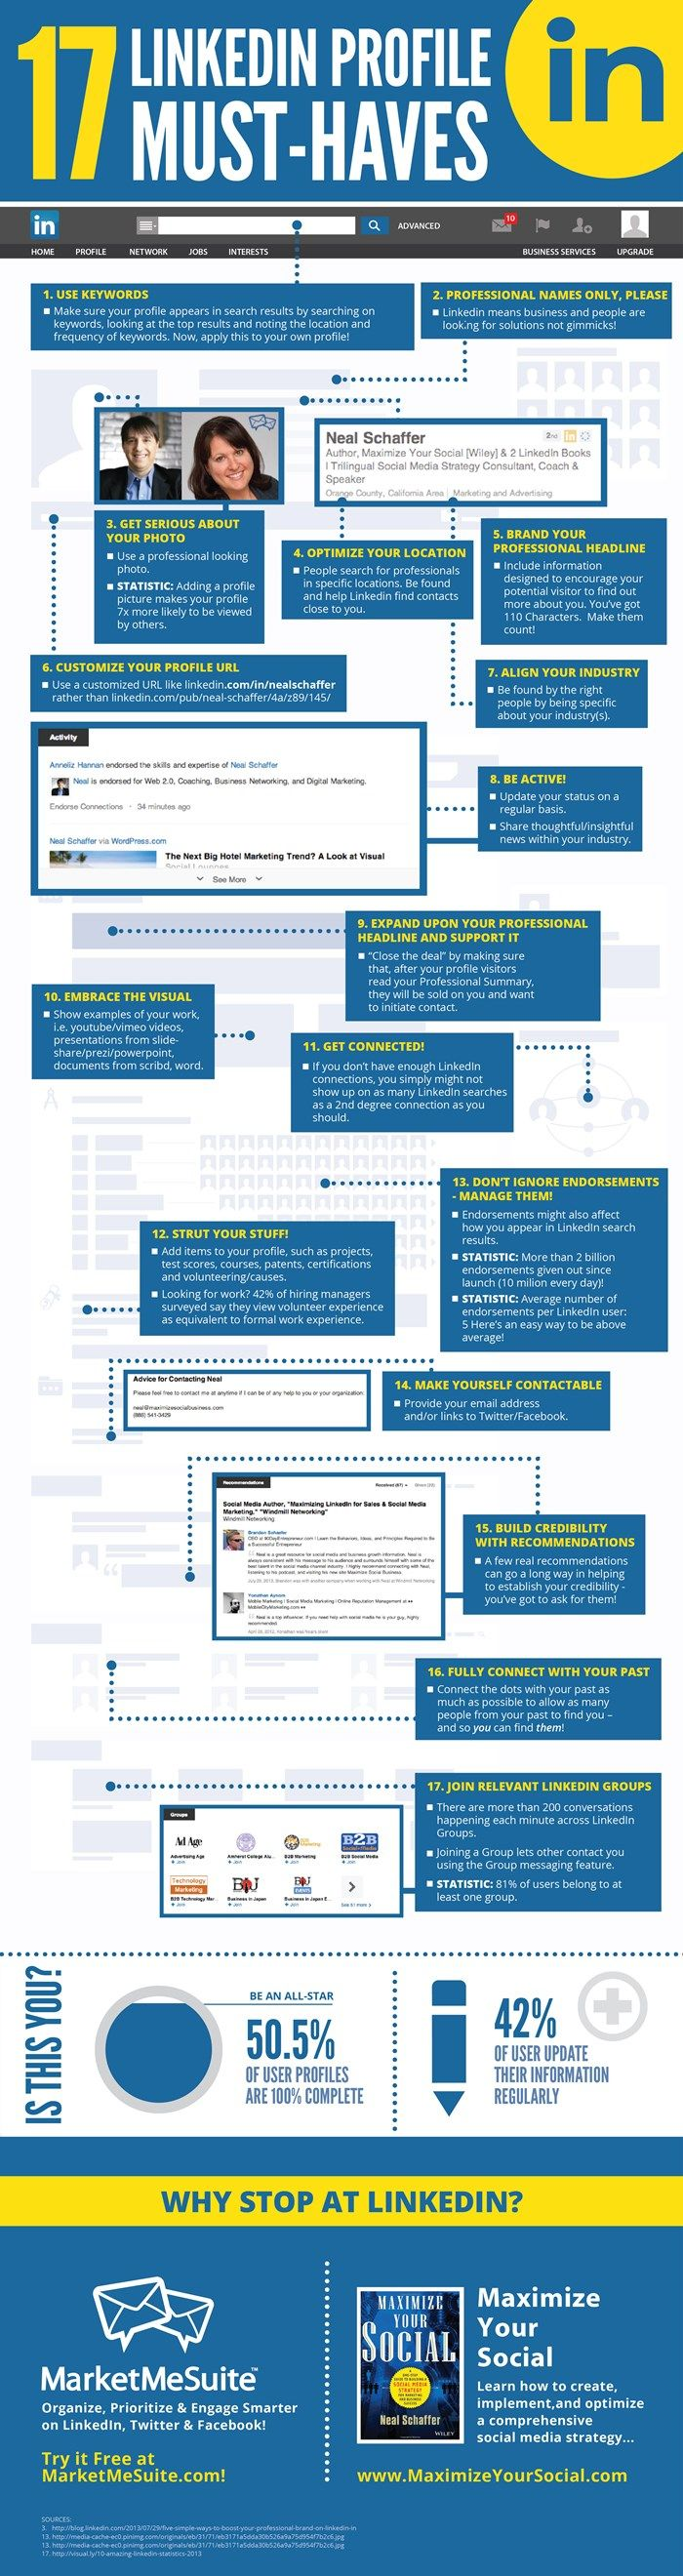 Captivating 17 LinkedIn Profile Must Haves Use LinkedIn As A Well To Explore Career  Options · Social Media ...